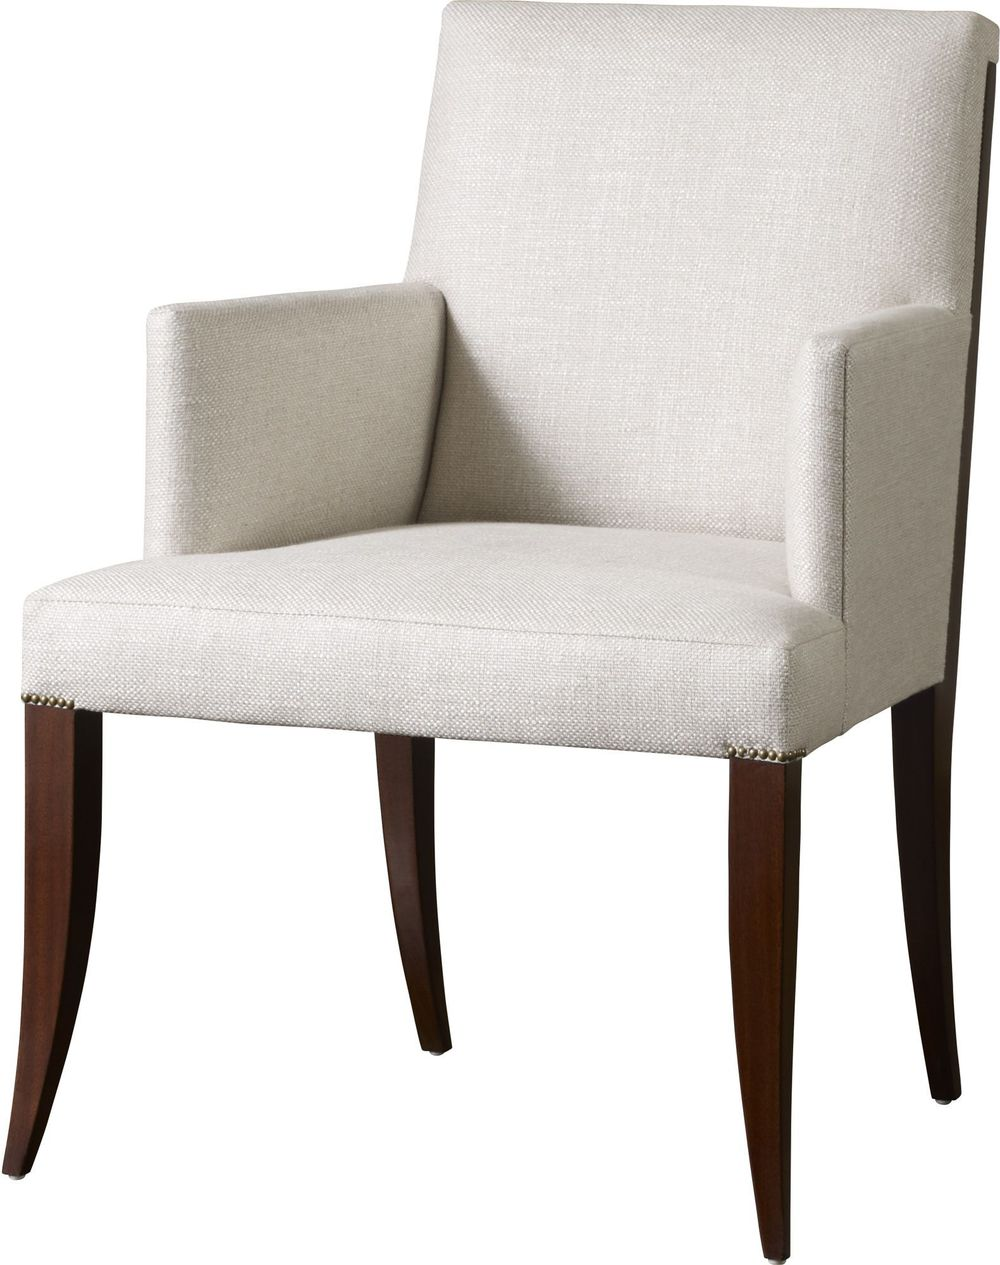 Baker Furniture - Atelier Dining Arm Chair